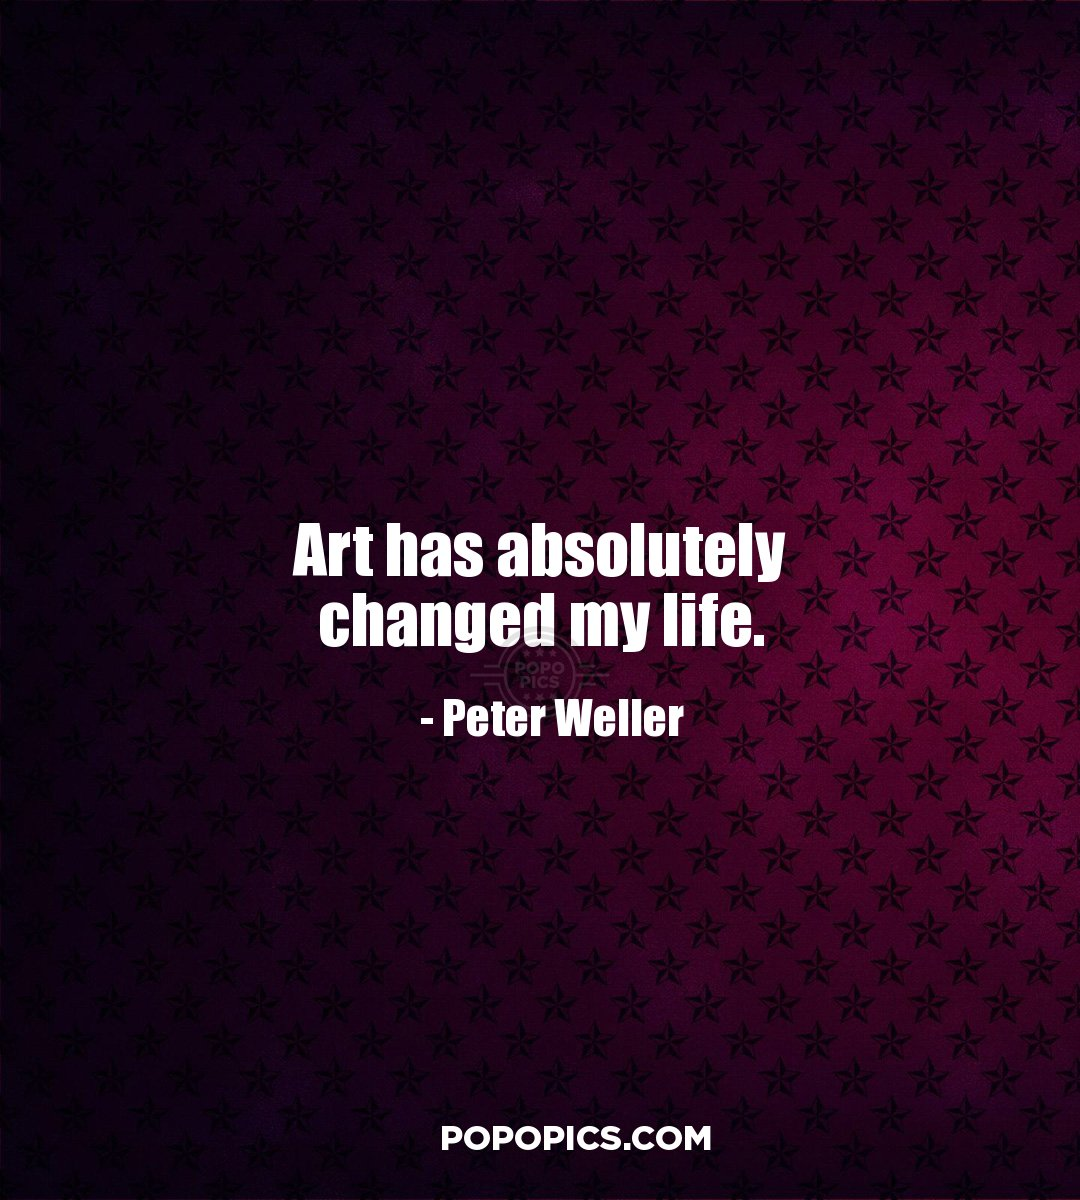 Impacted My Life Quotes: Art Has Absolutely Changed My Life.